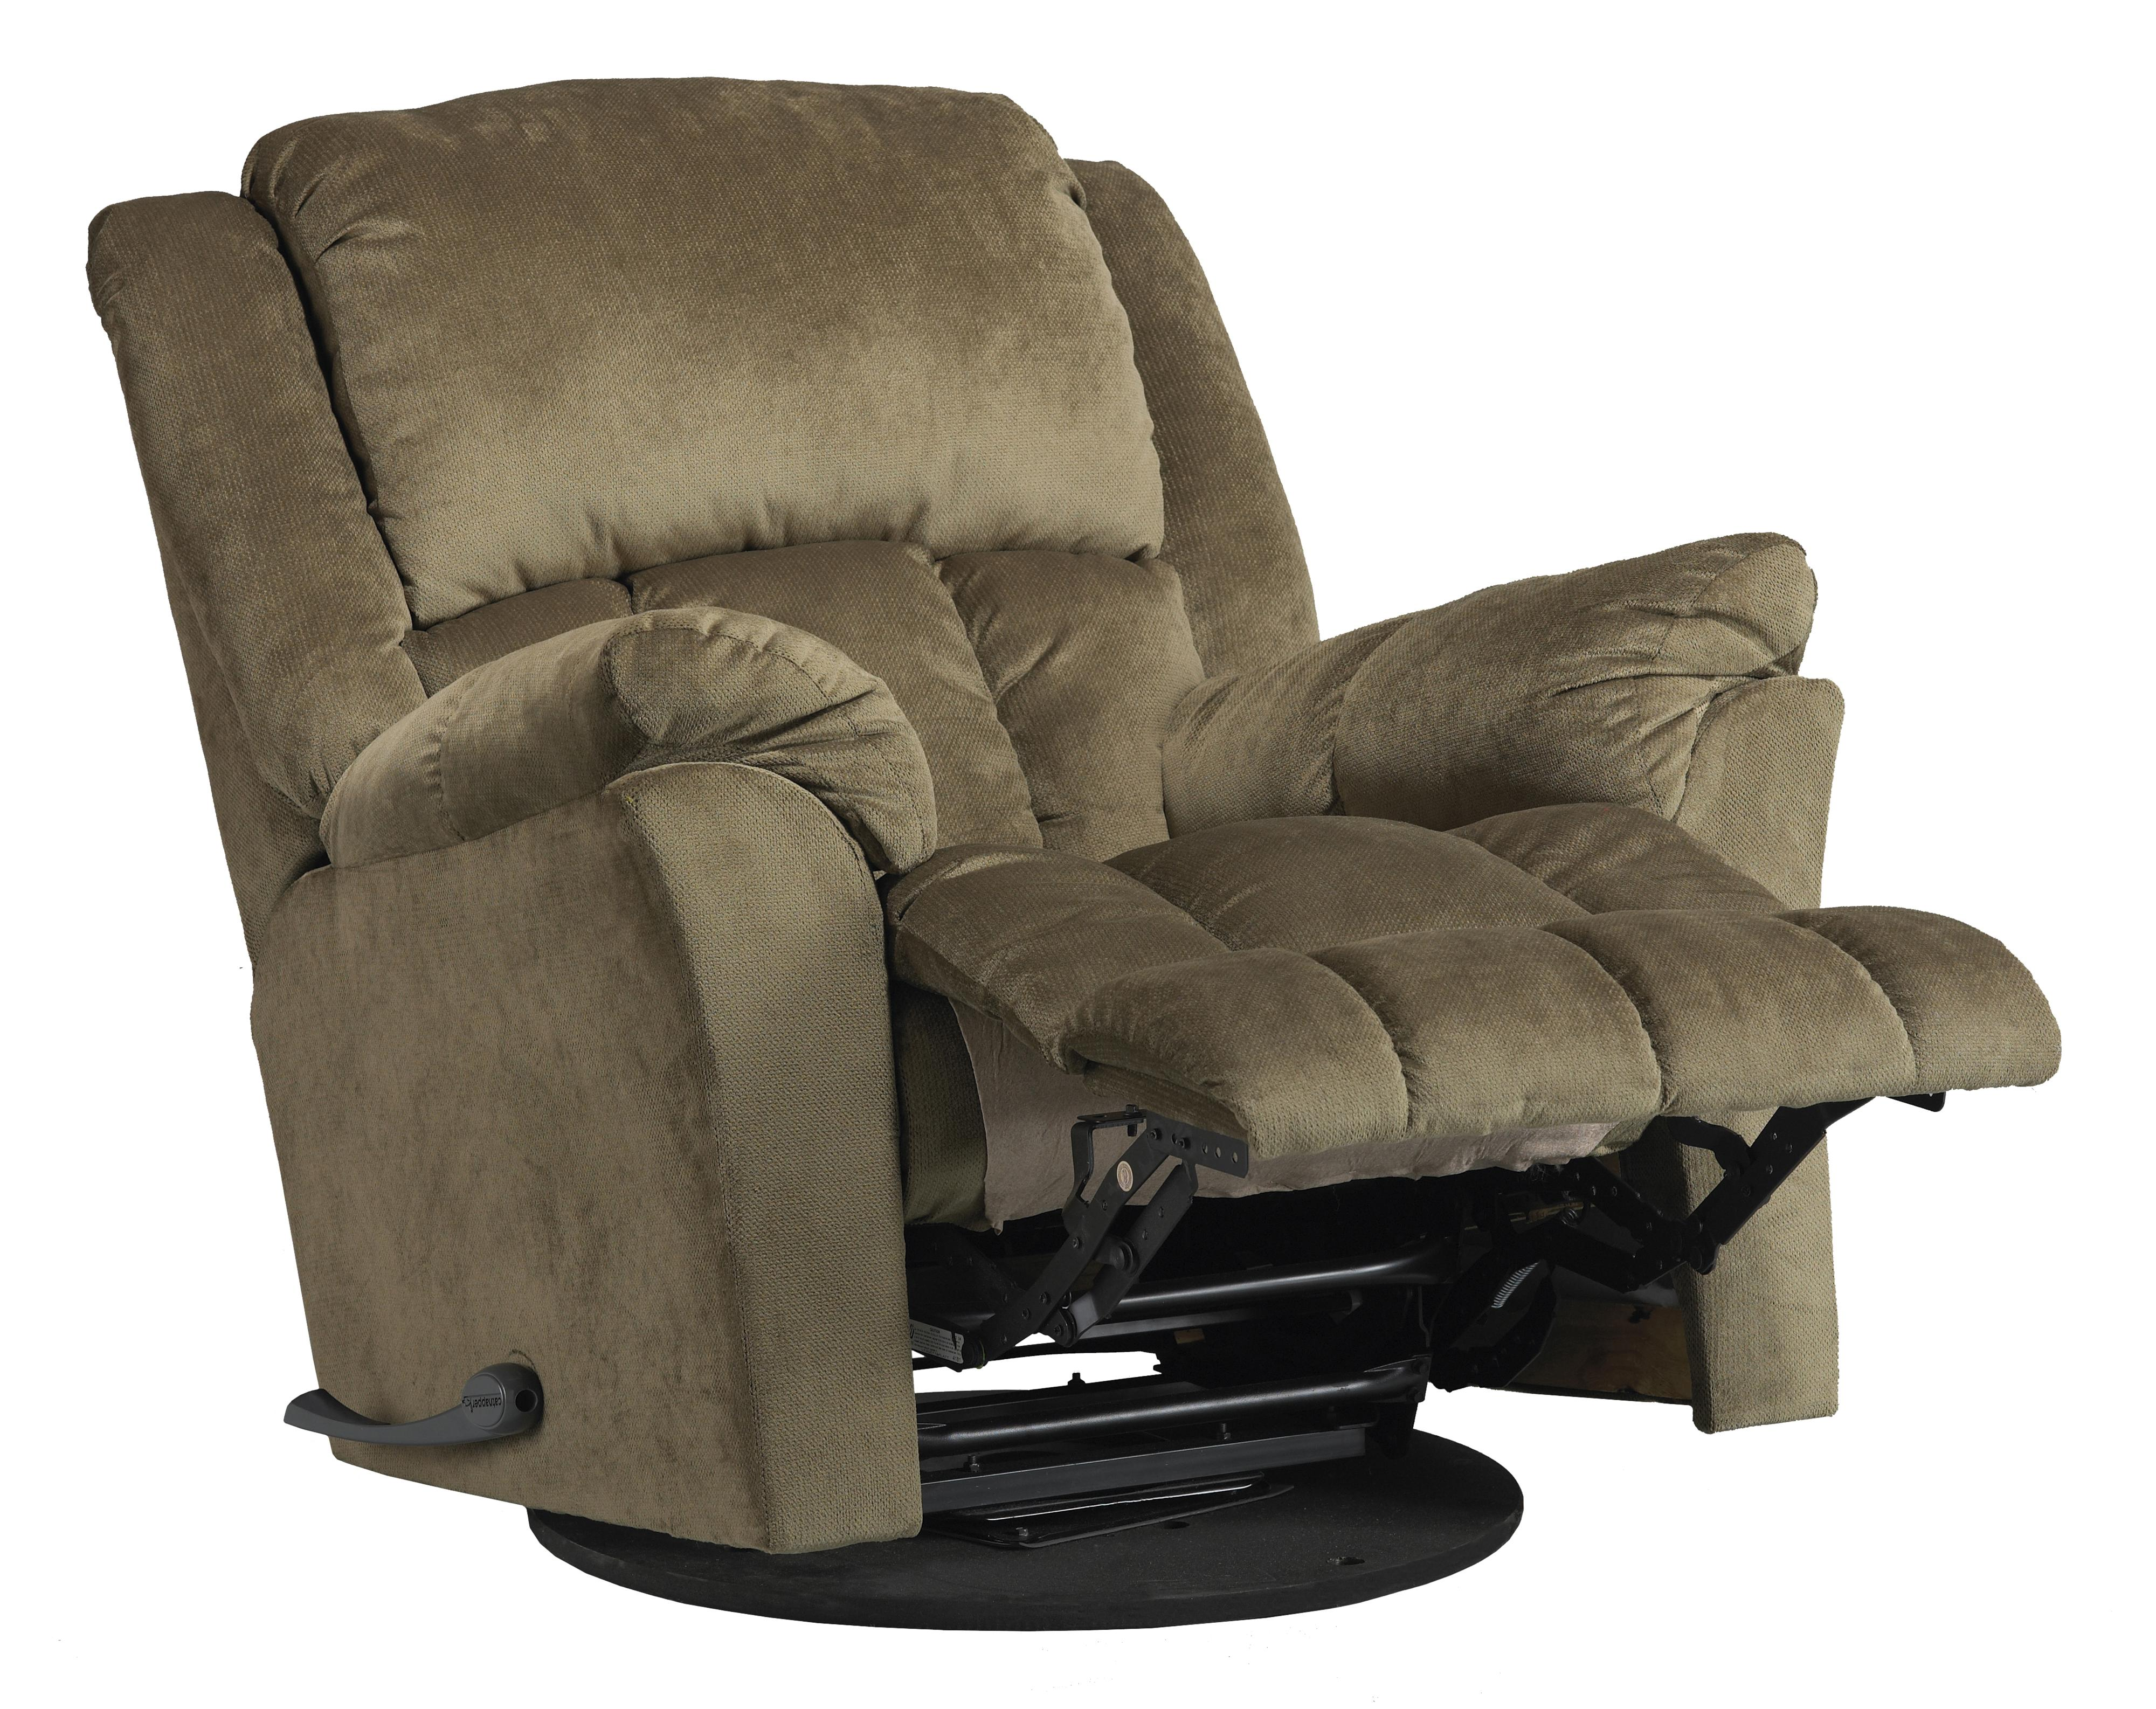 Catnapper Motion Chairs and Recliners Gibson Lay Flat Recliner - Item Number: 4516-7-1831-25